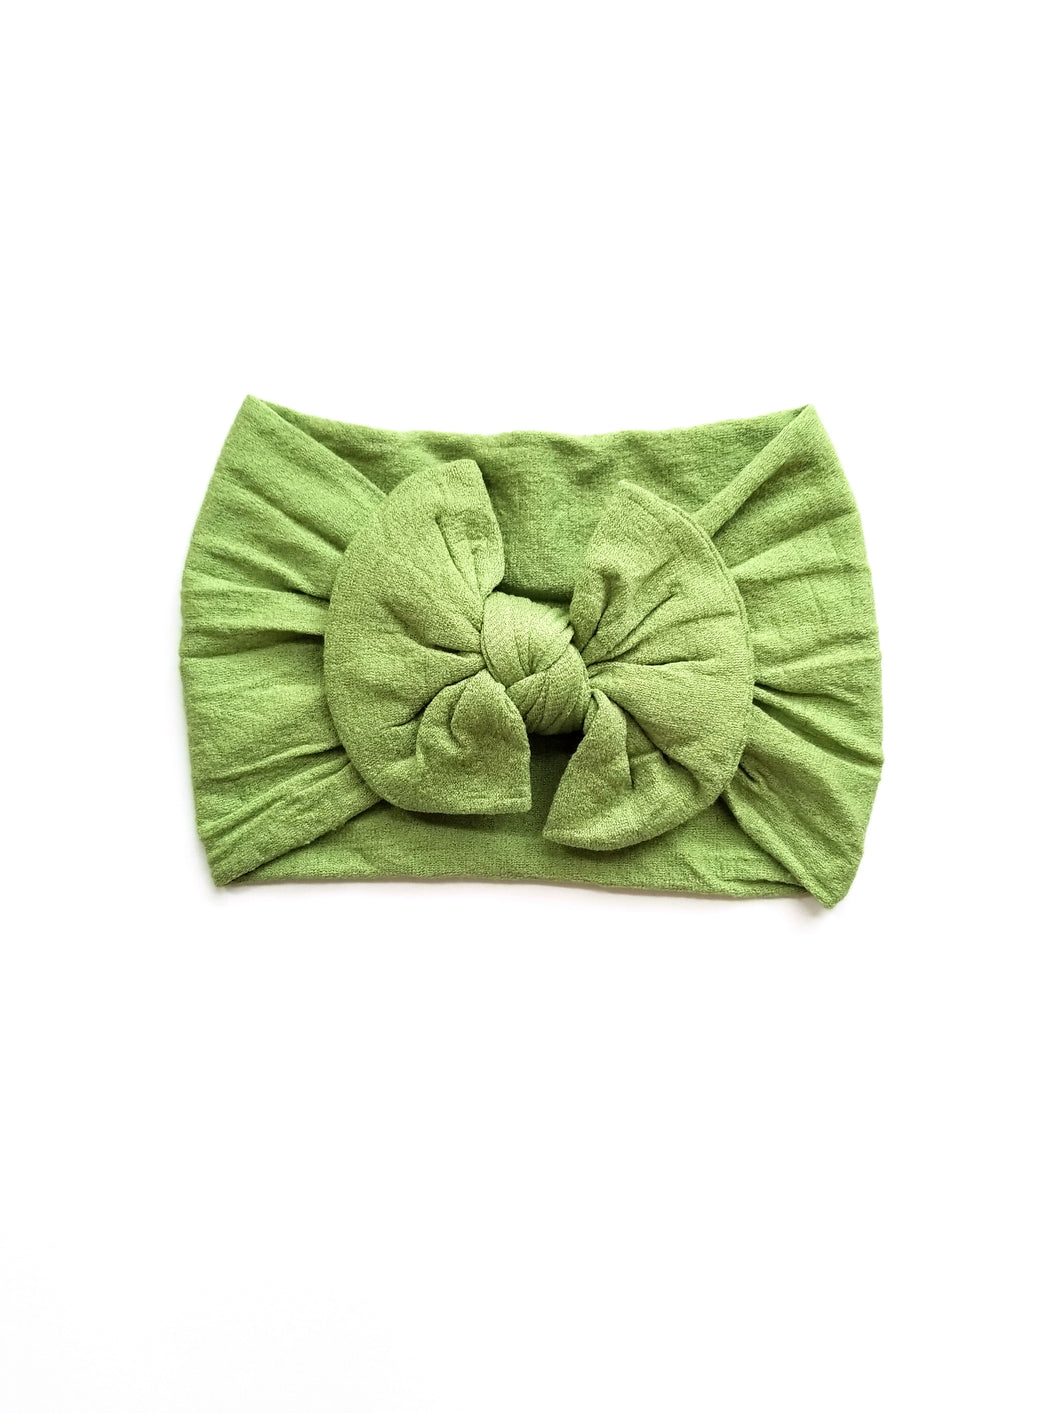 Nylon Bow Headwrap In Mint - Adassa Rose